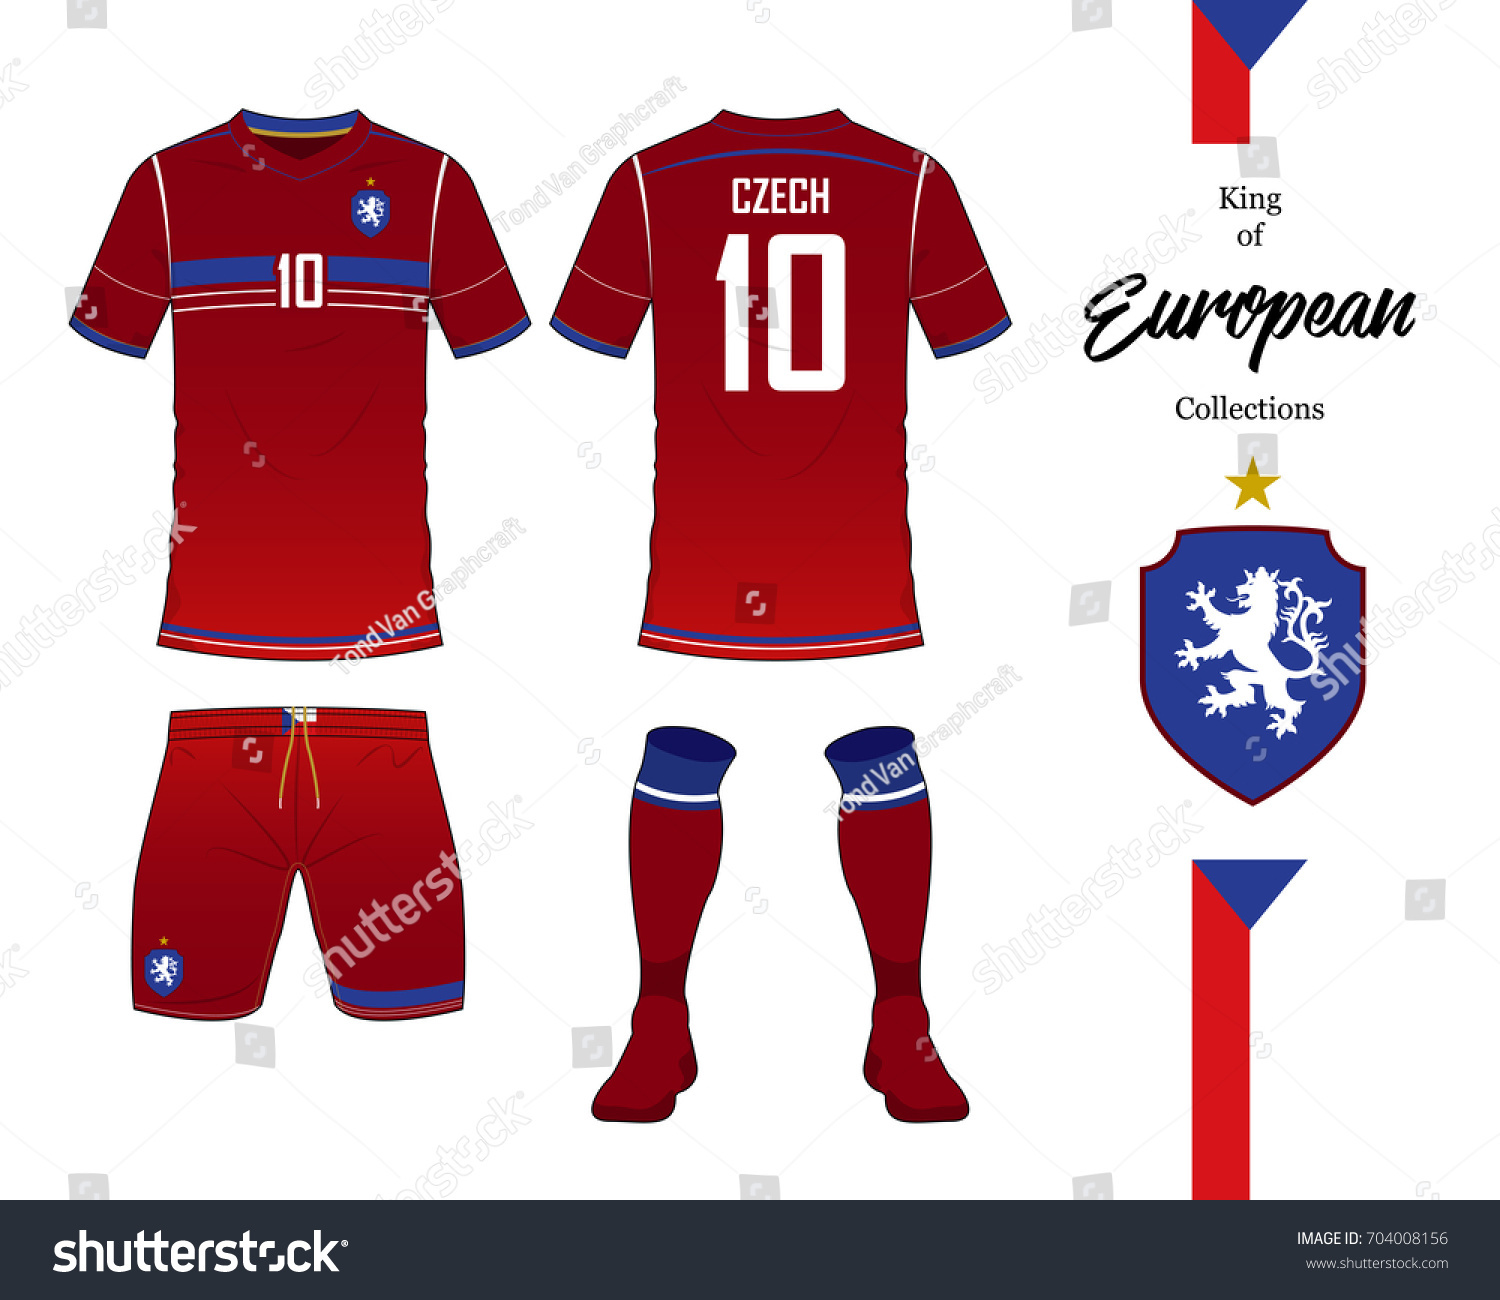 Czech Republic Football National Team In Euro Championship Concept Soccer Jersey Or Kit Template